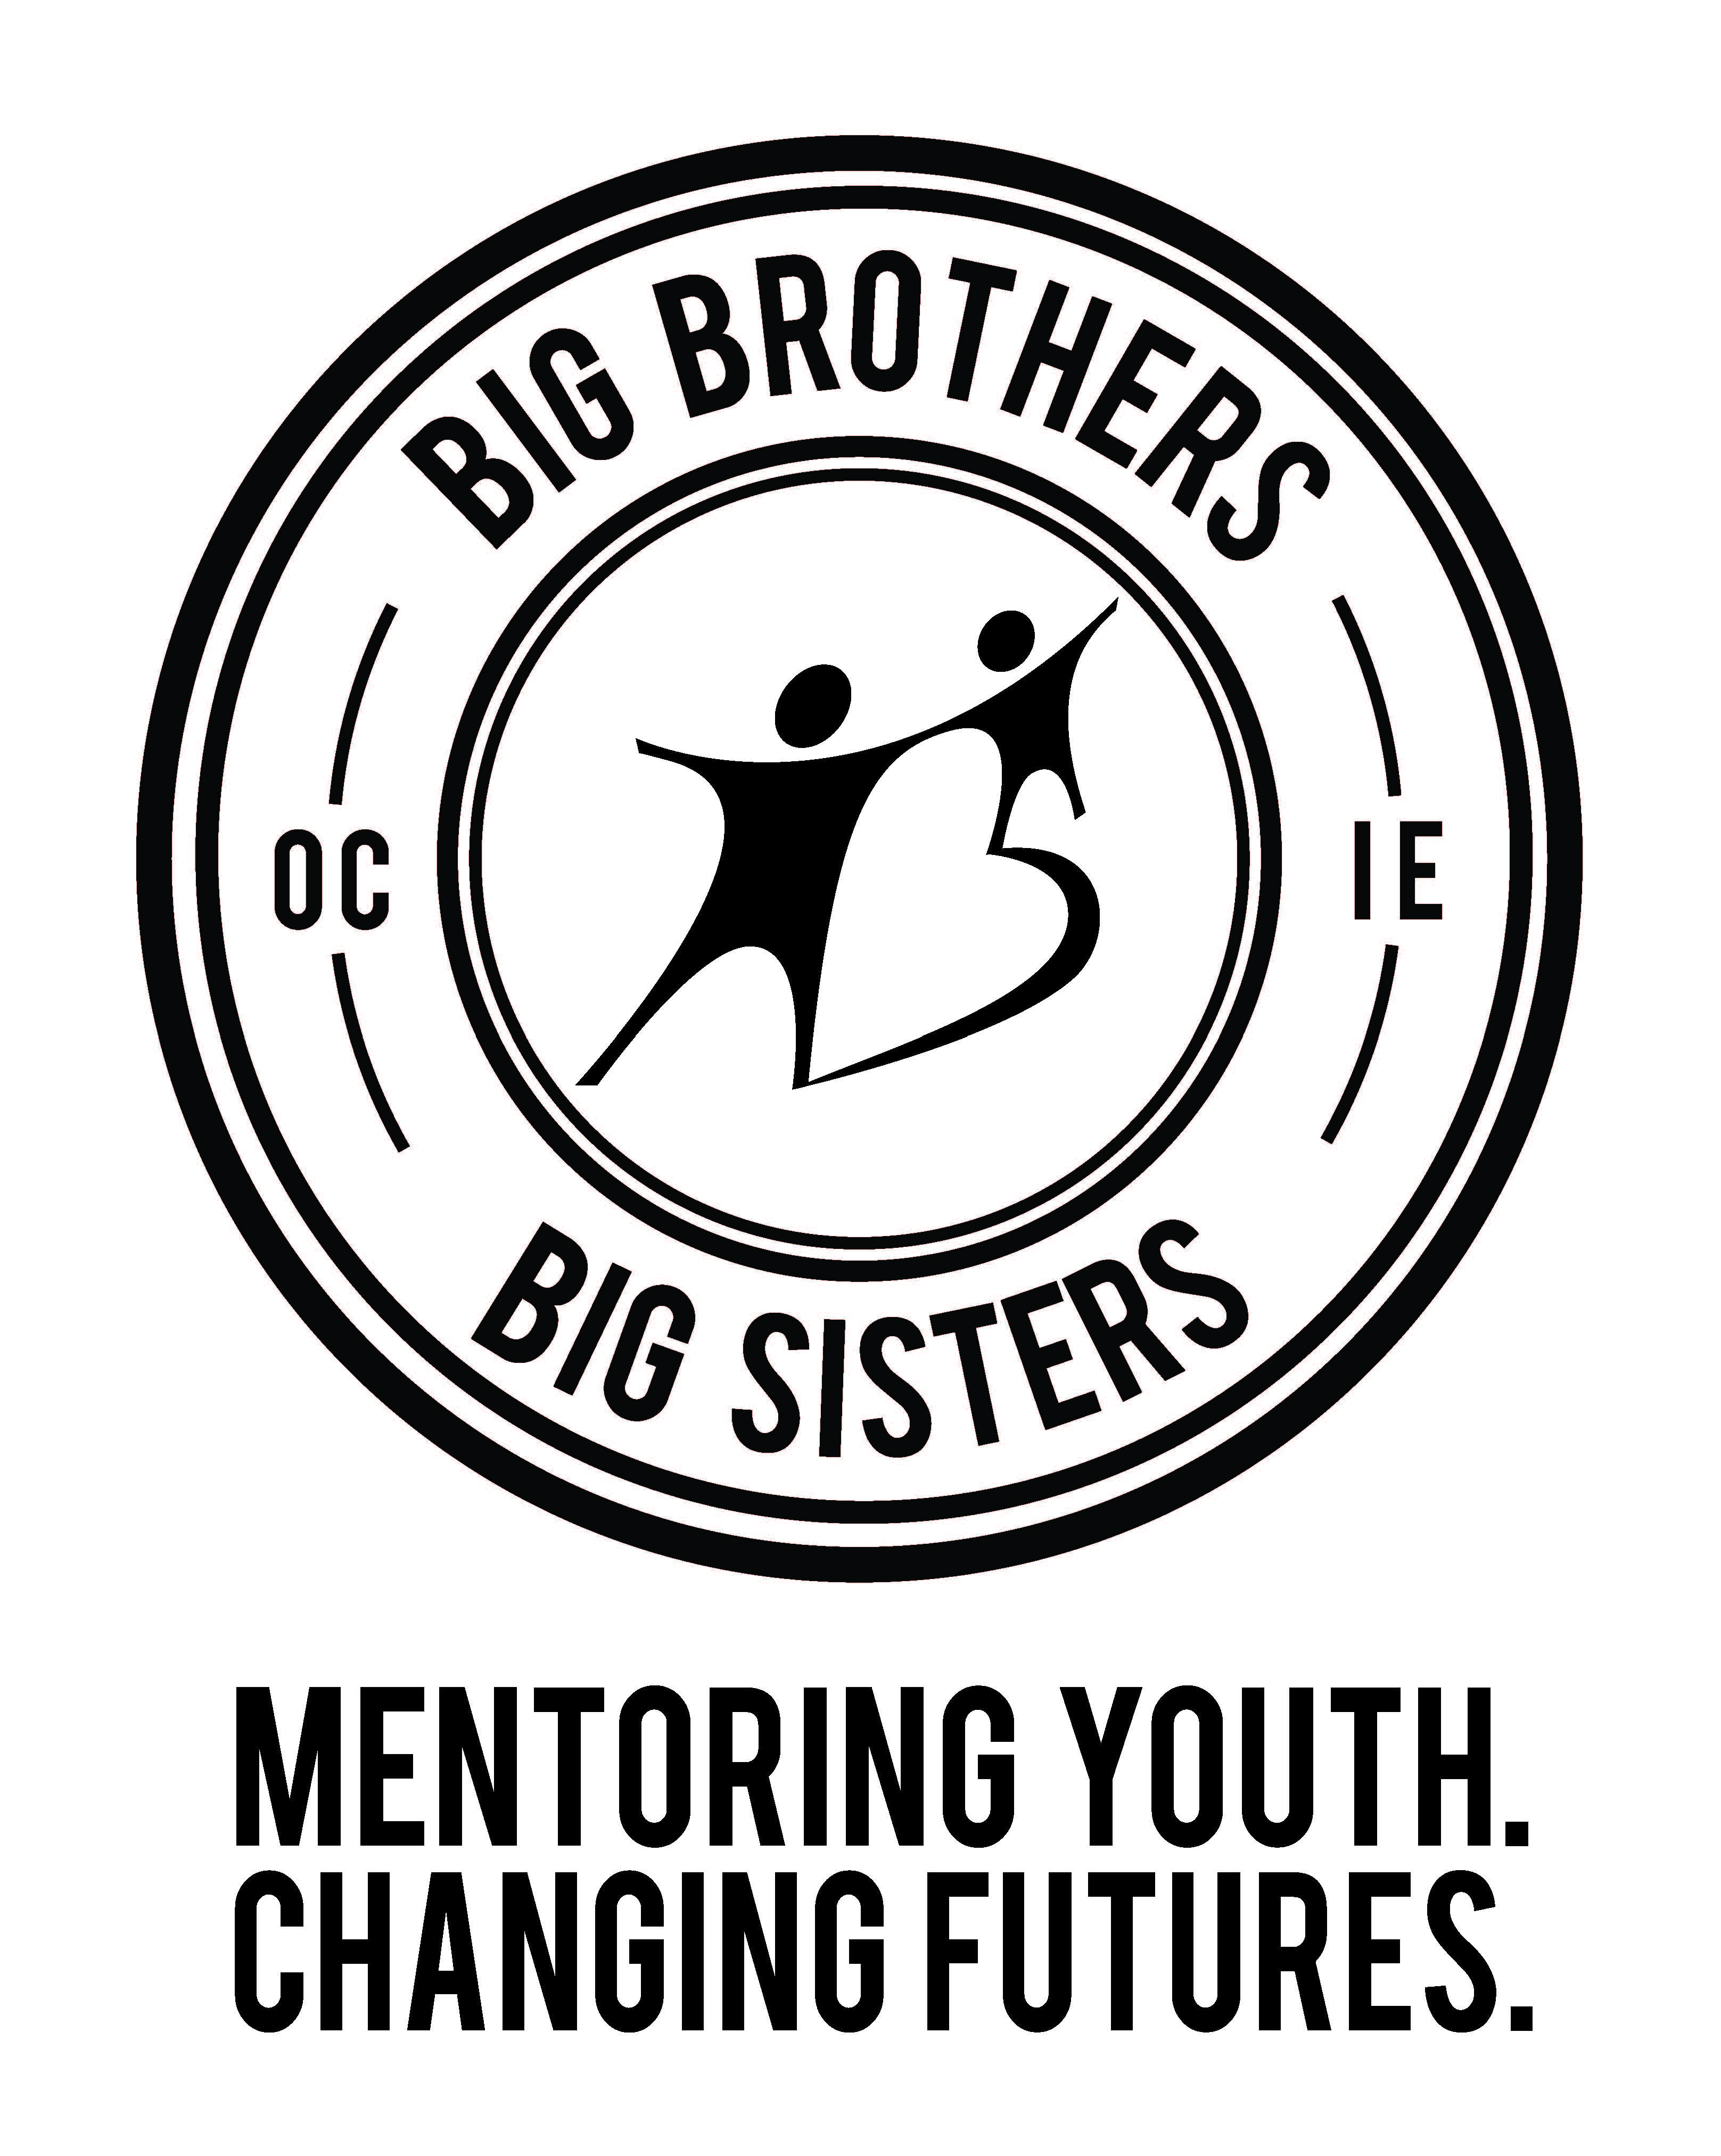 Big Brothers Big Sisters of Orange County and Greater Inland Empire